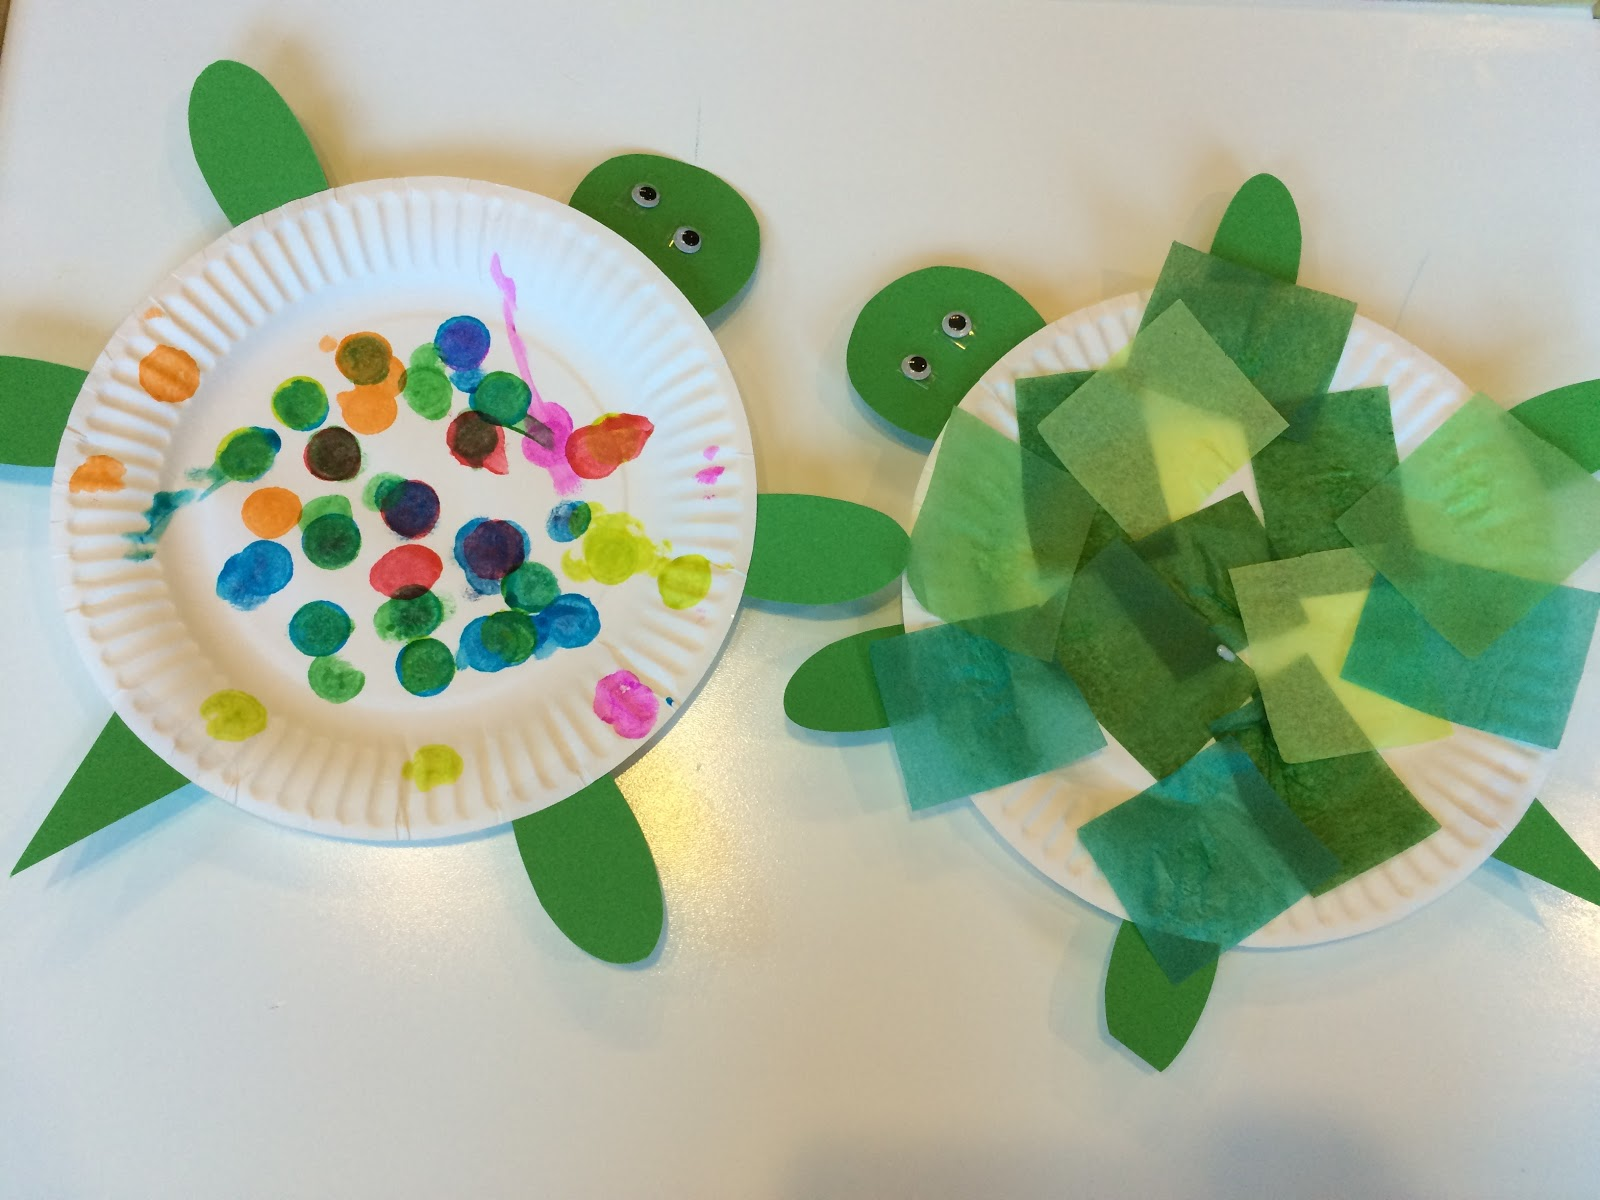 ... paper which we glued onto the back of our paper plate. We topped it off with two goggly eyes. I also found a darling Turtle Egg Carton Craft. & News with Naylors: Letter T - Turtles: Shape Craft Paper Plate ...